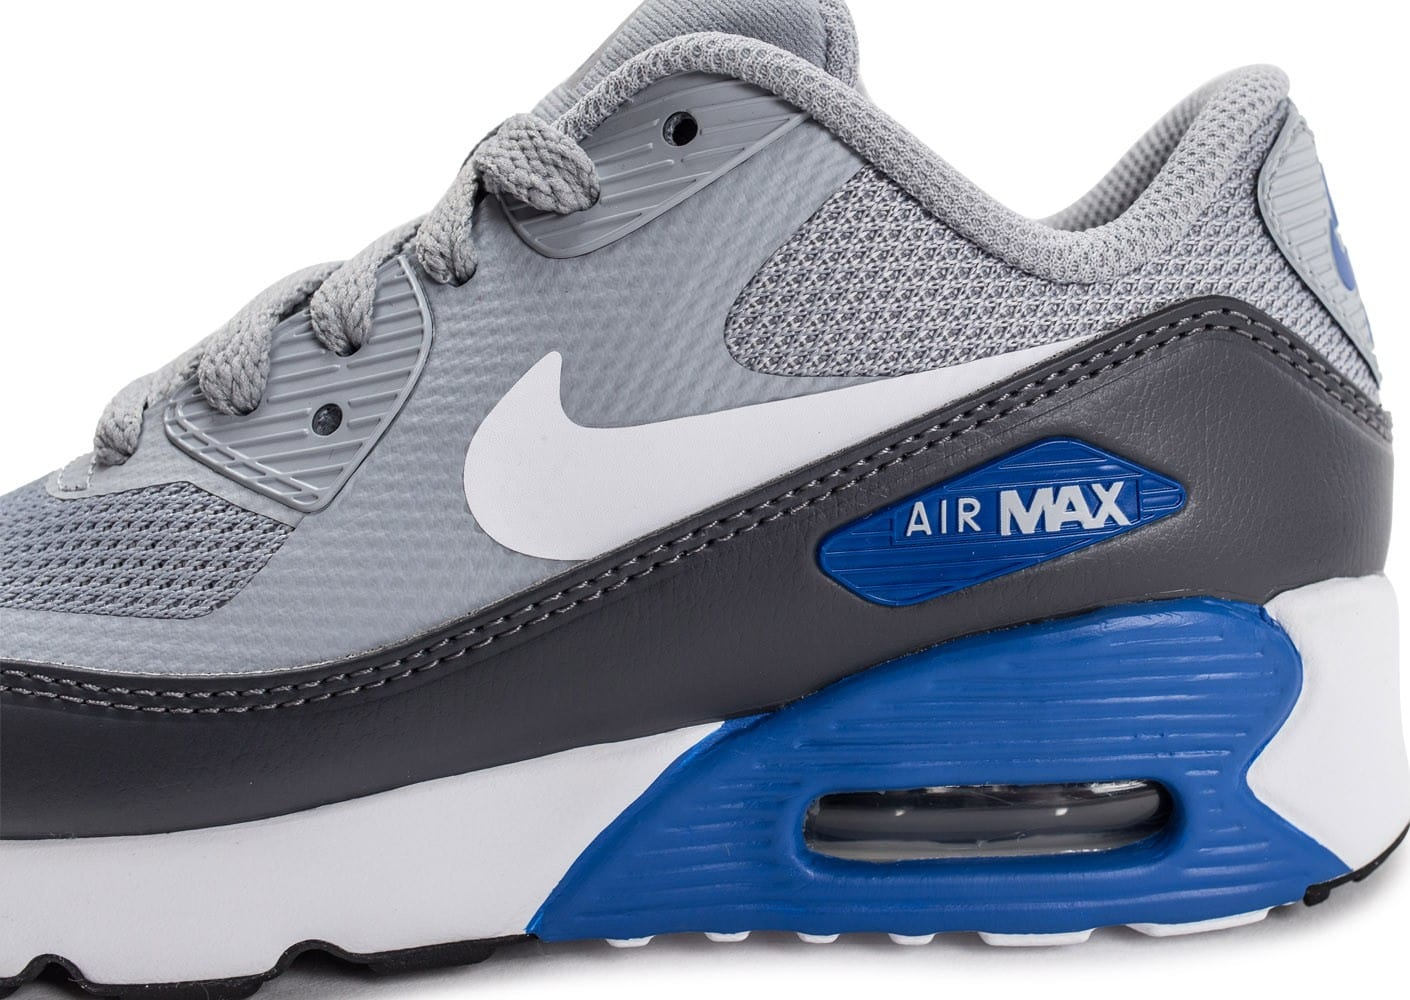 Chaussures Nike Air Max 90 Ultra 2.0 Ultra Enfant grise vue dessus .